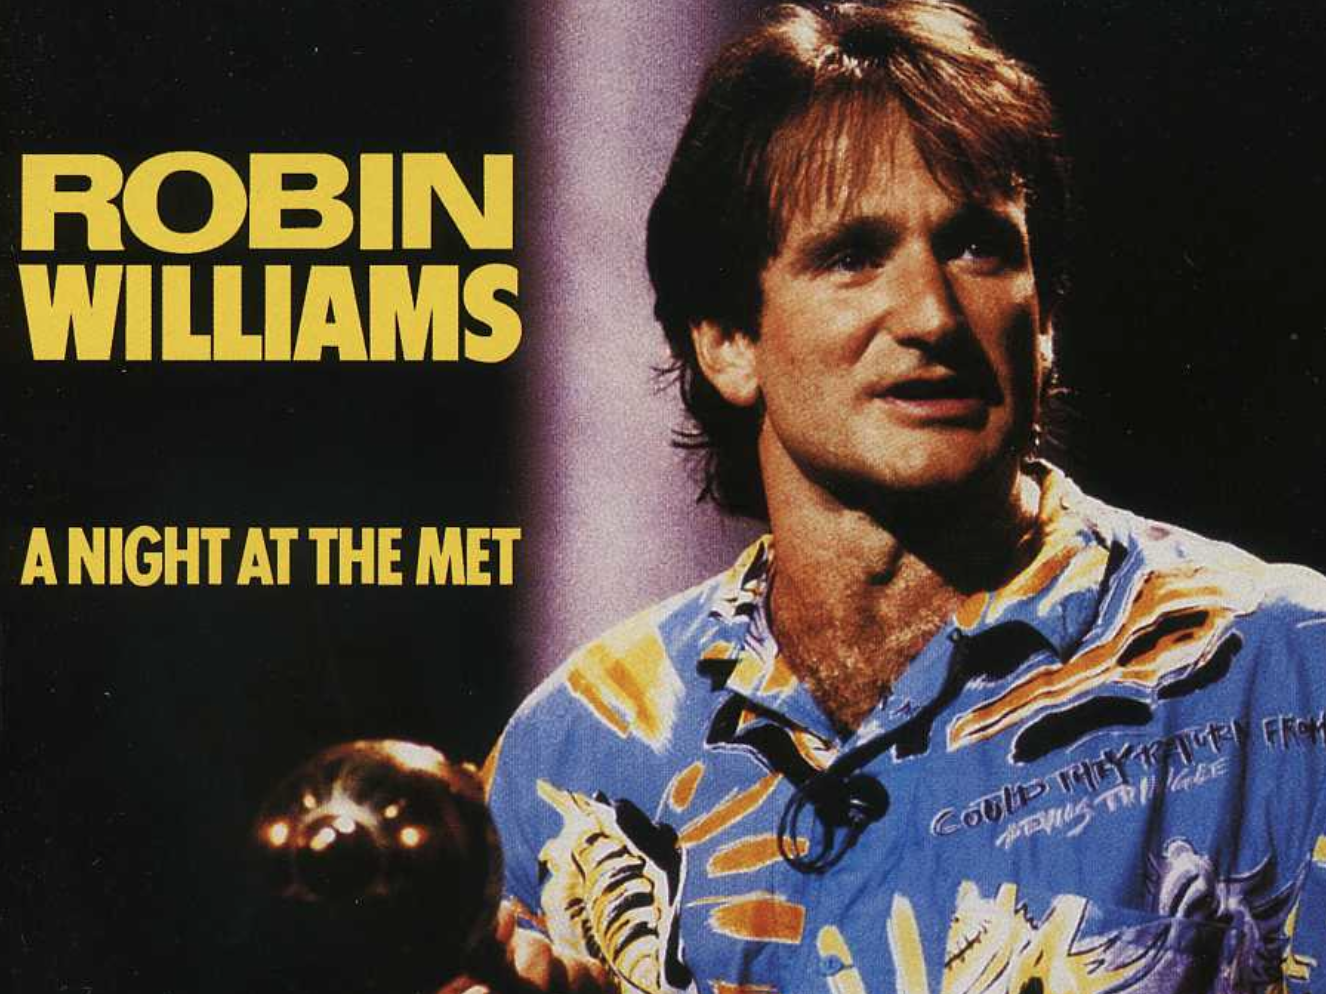 Robin Williams, Inspiration and Depression